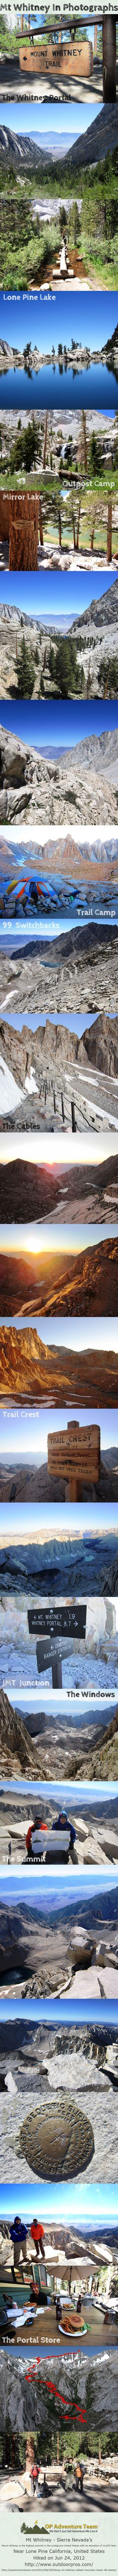 Mt Whitney Hike in Photos... awesome photo guide